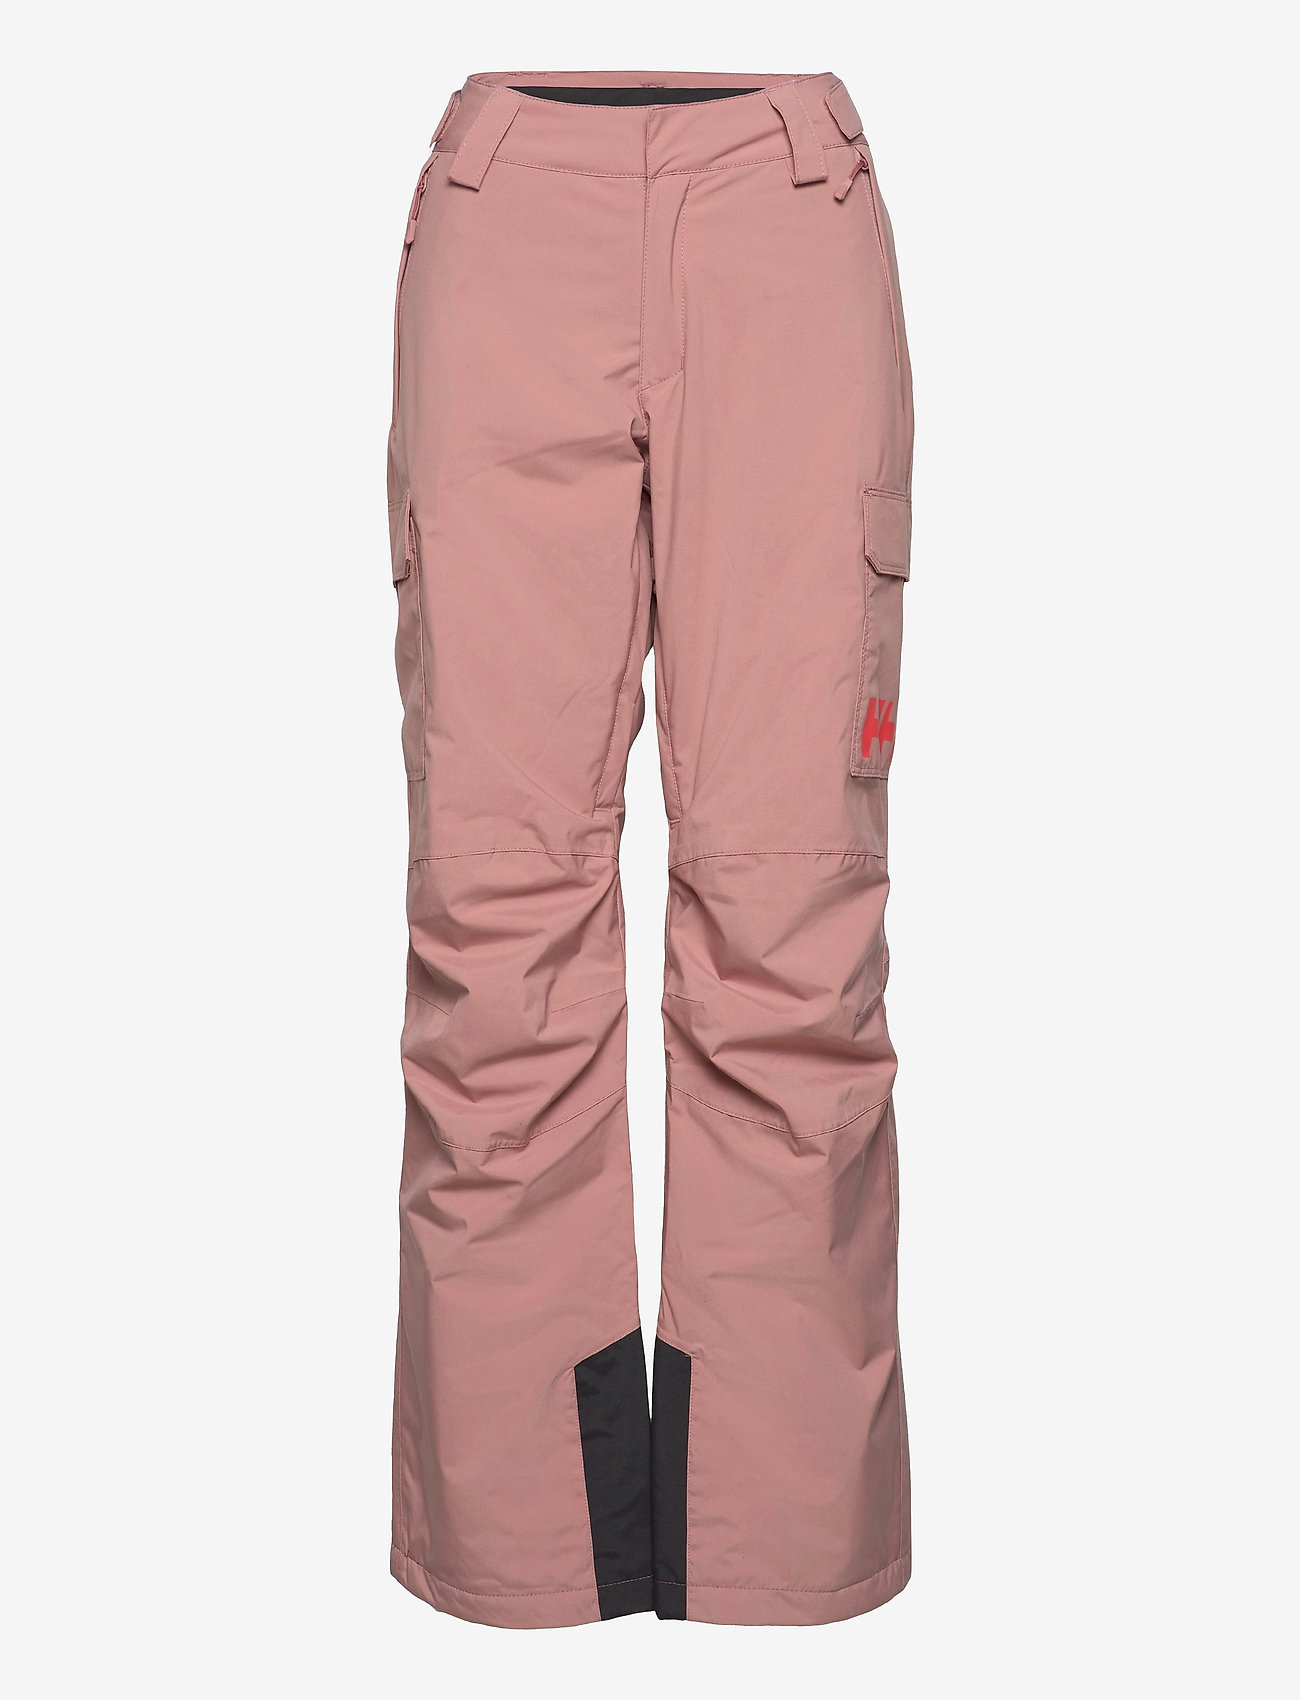 Helly Hansen - W SWITCH CARGO INSULATED PANT - skibukser - ash rose - 0